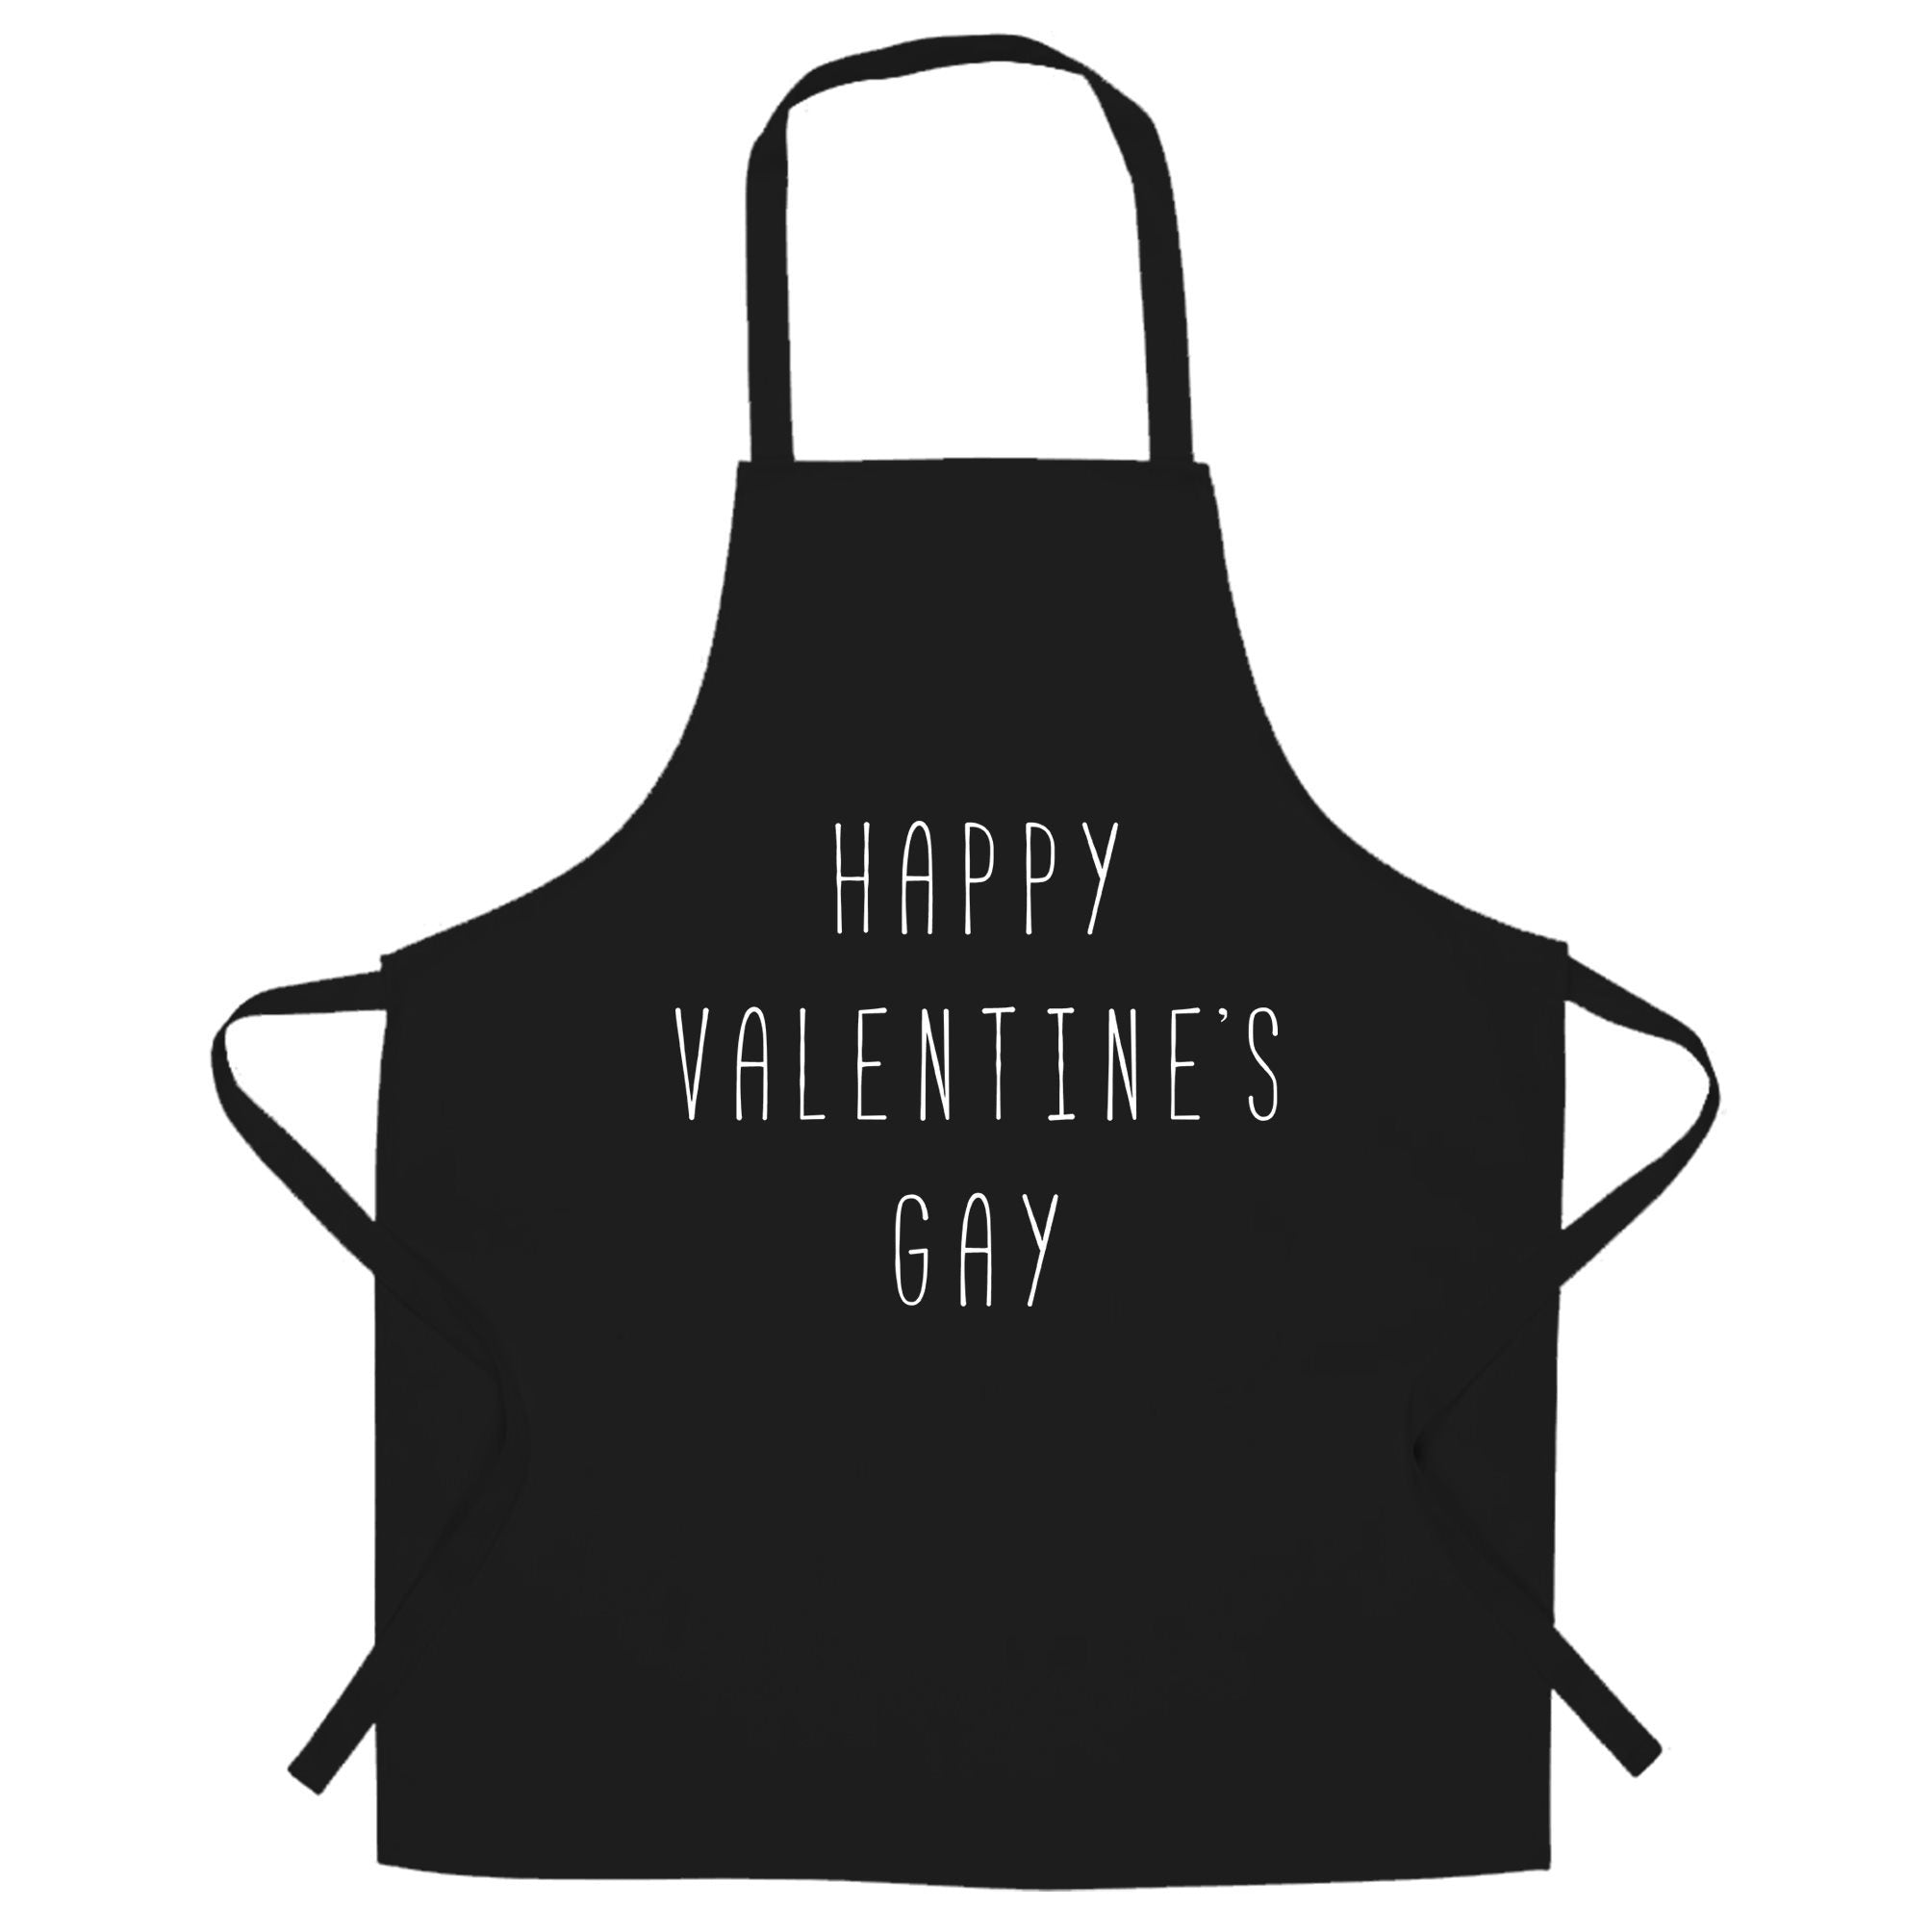 Relationship Chef's Apron Happy Valentine's Gay Pun